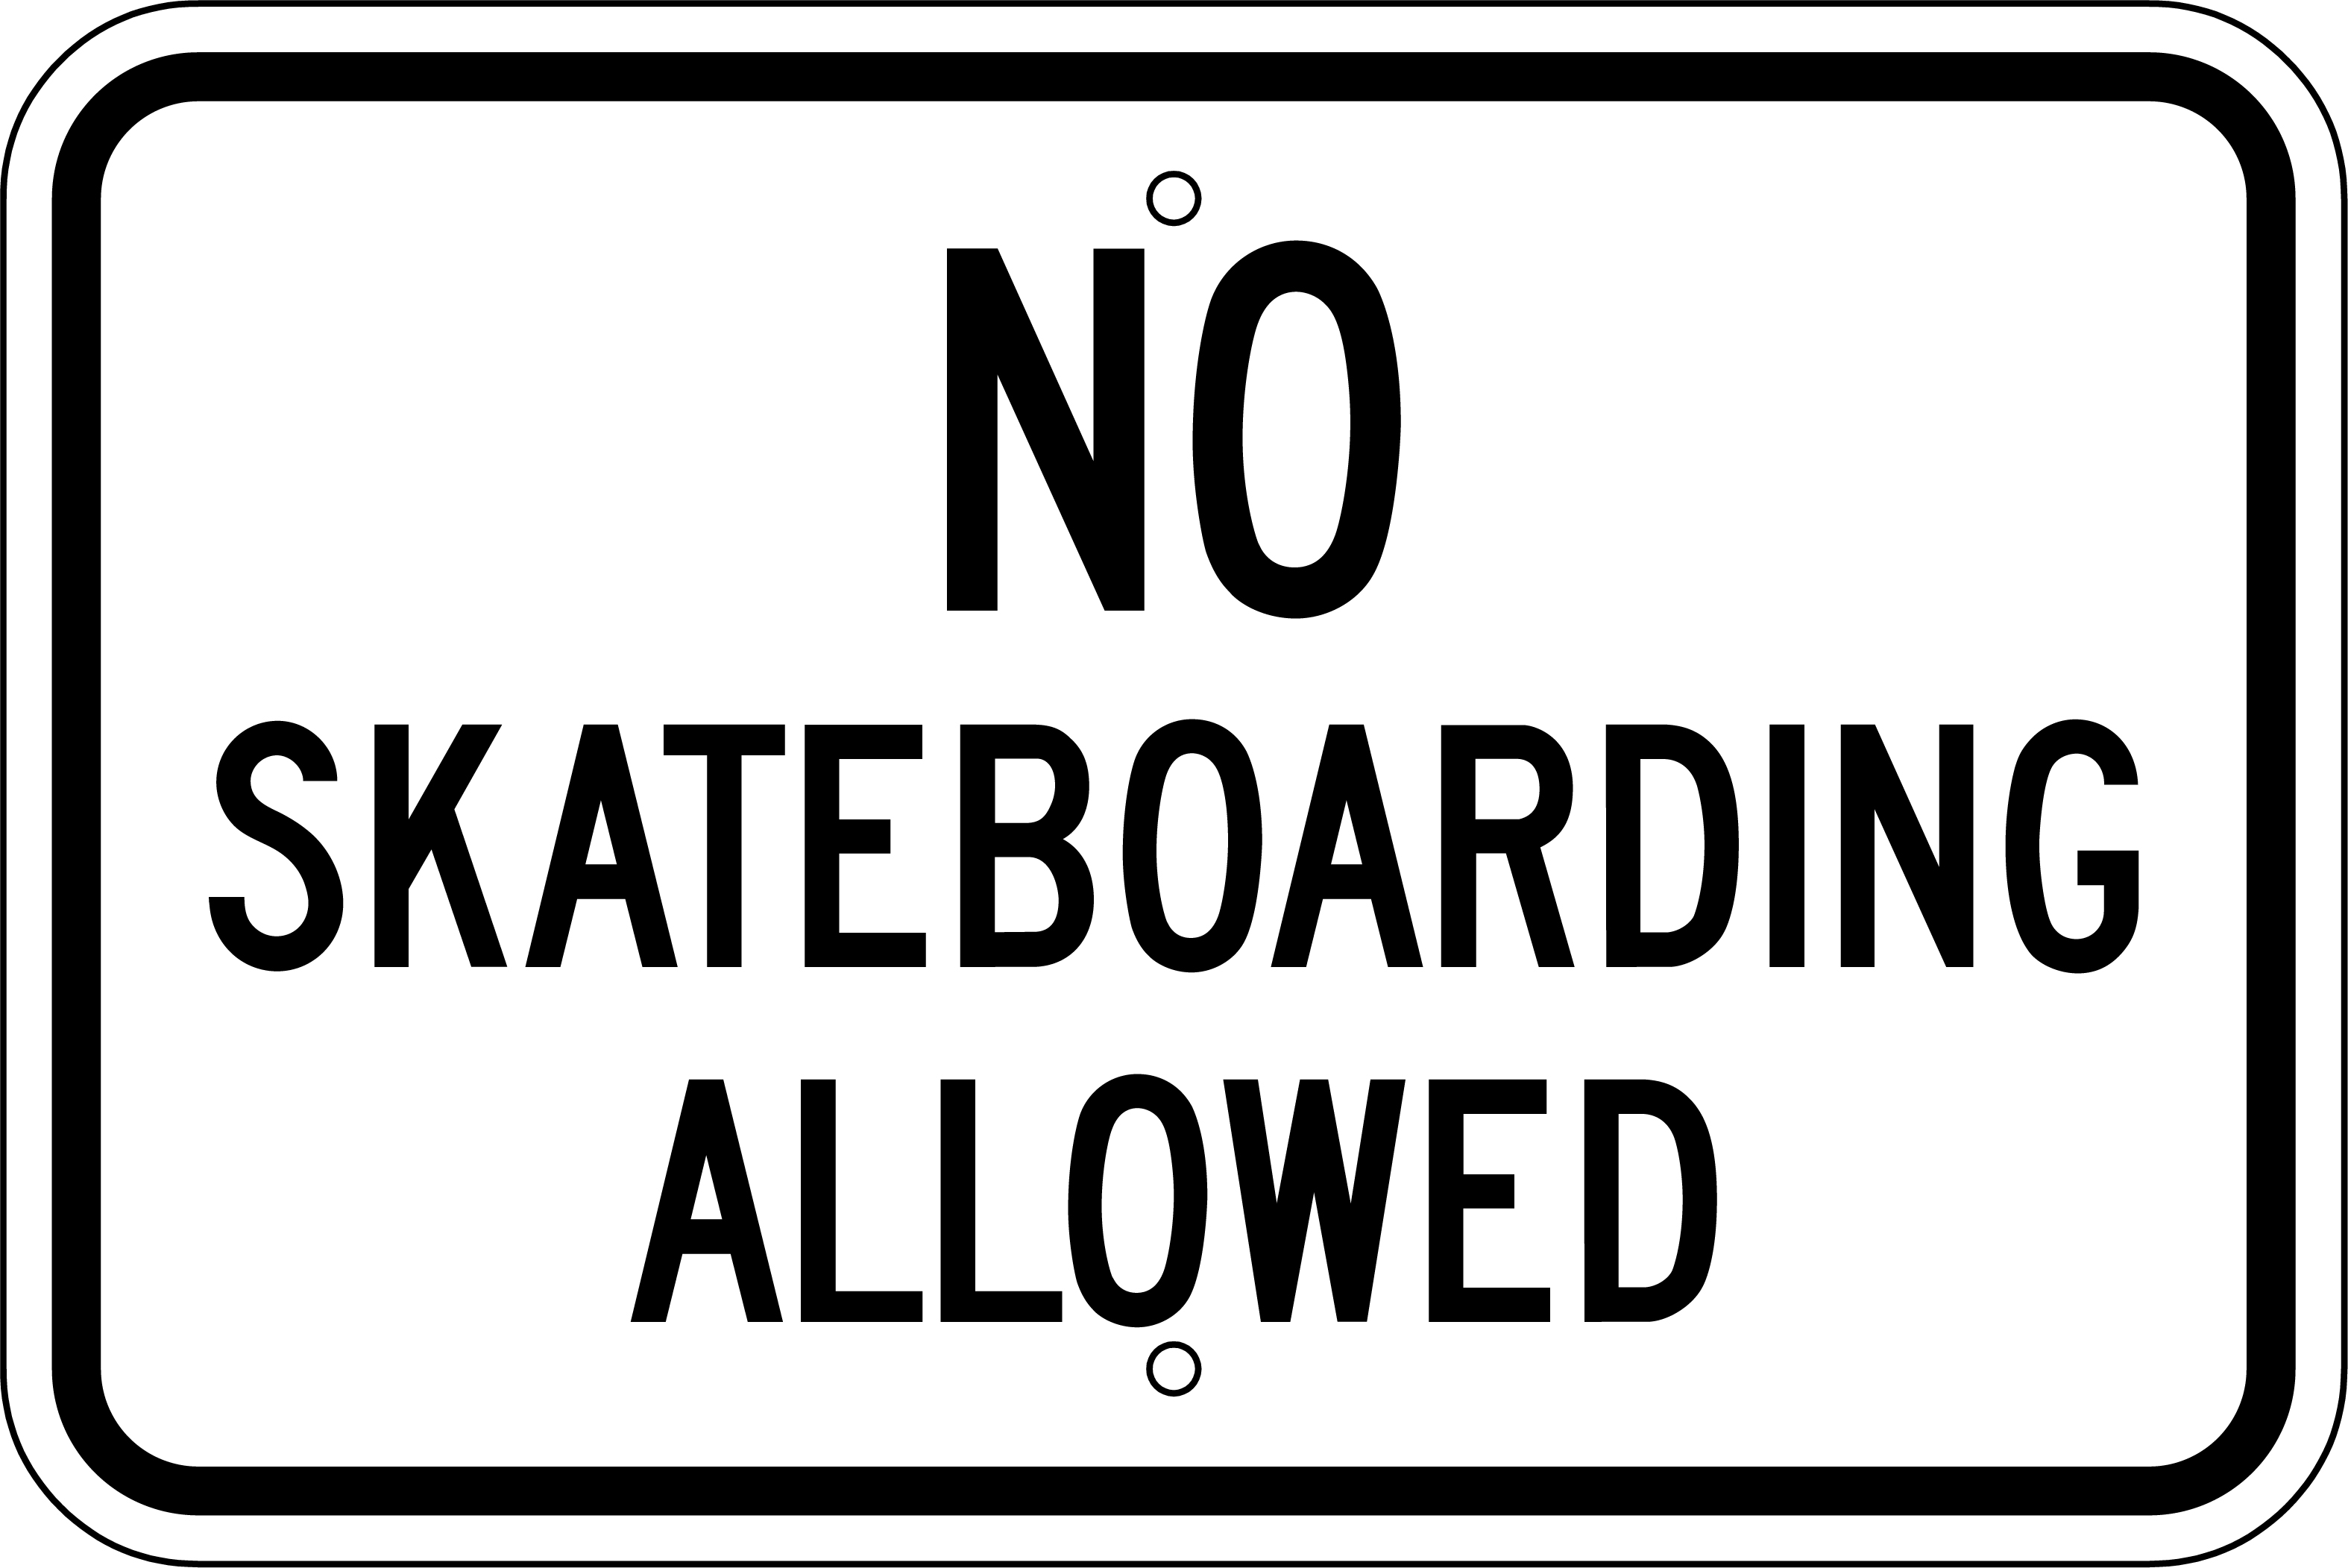 No skateboards allowed photo